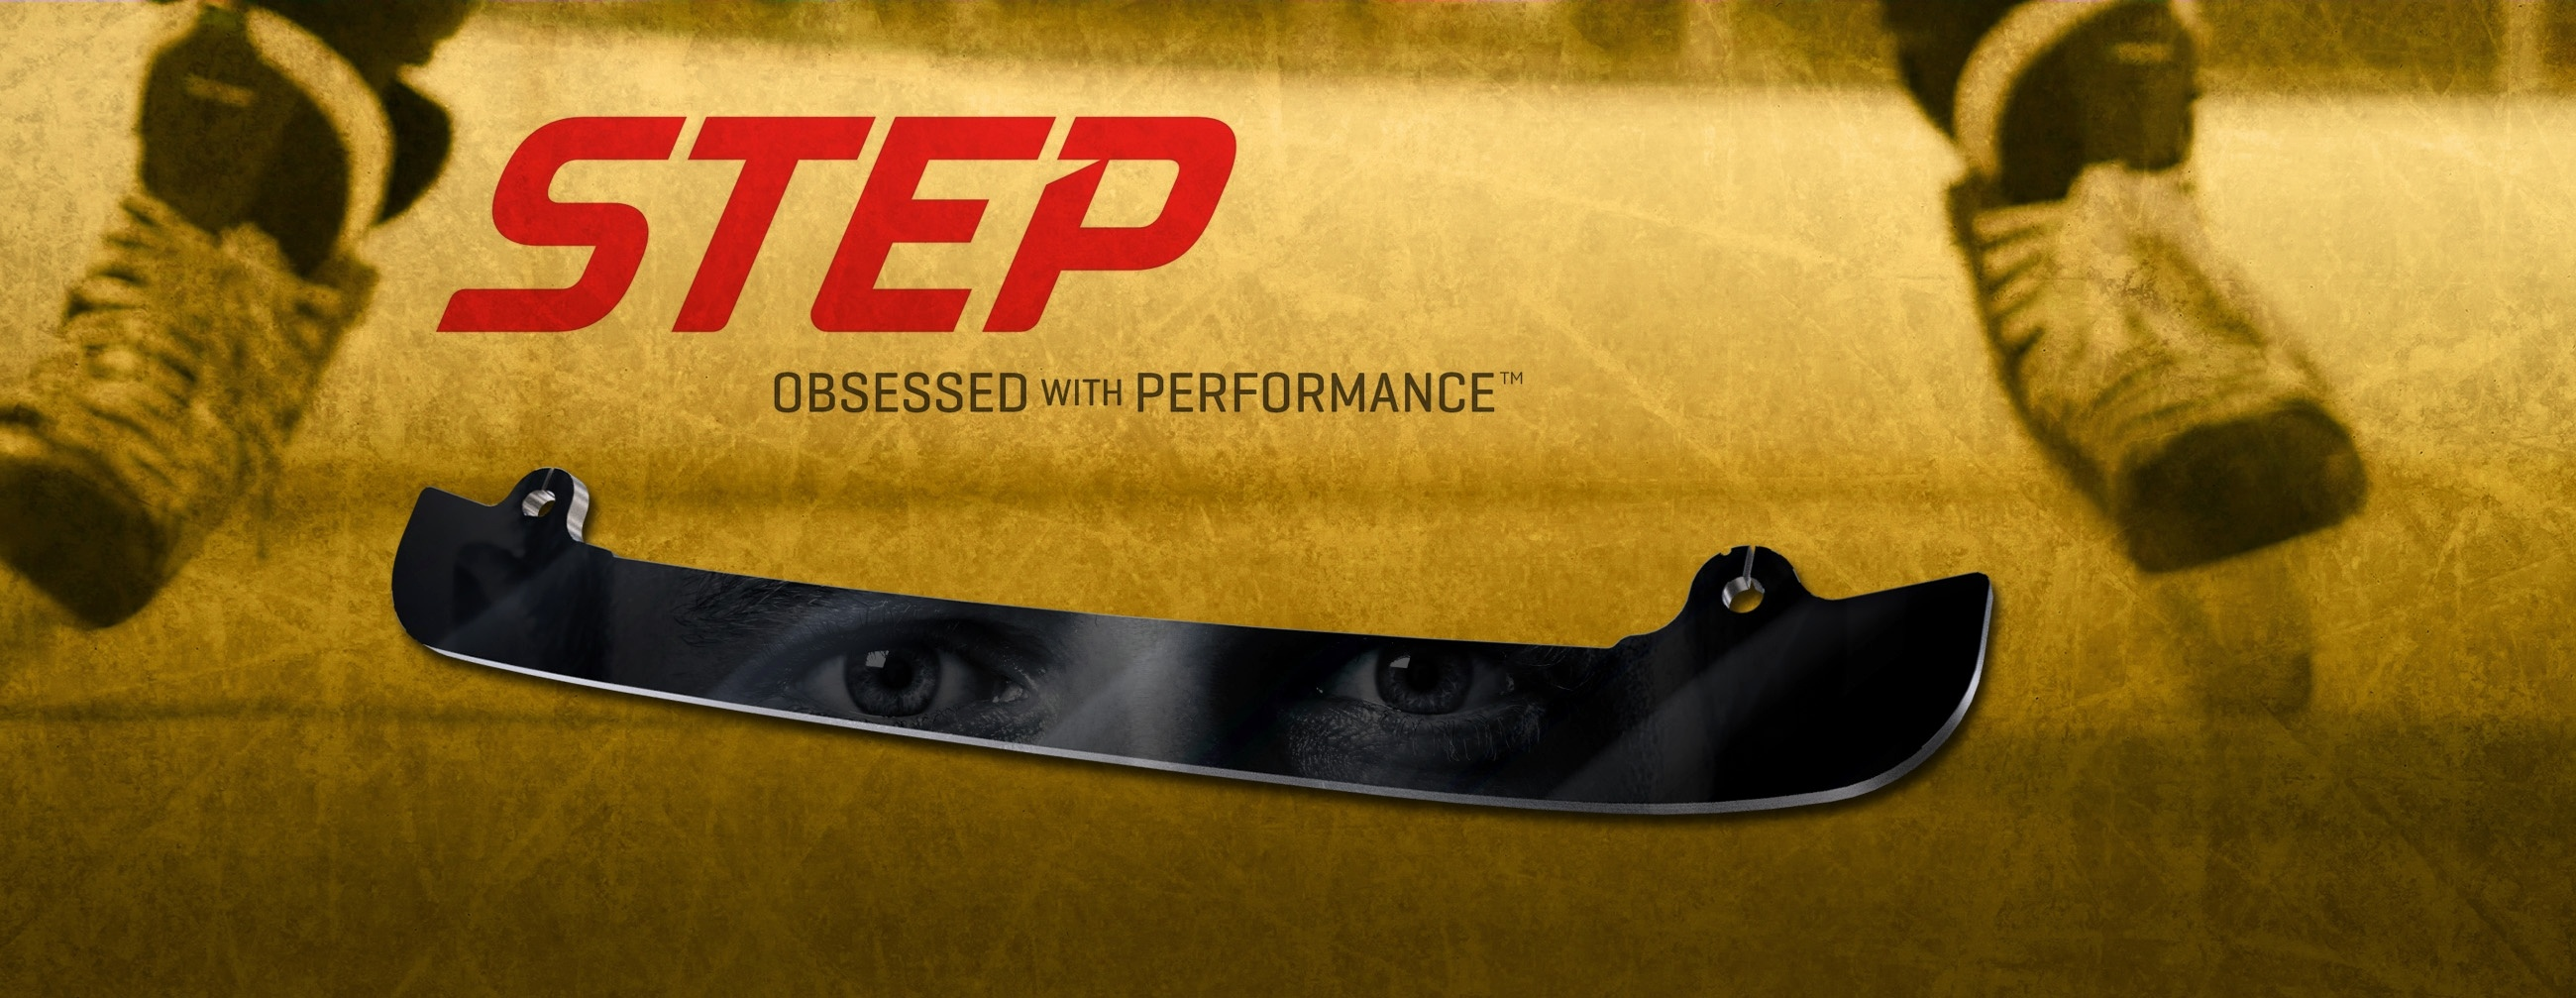 Step Steel - Obsessed with Performance